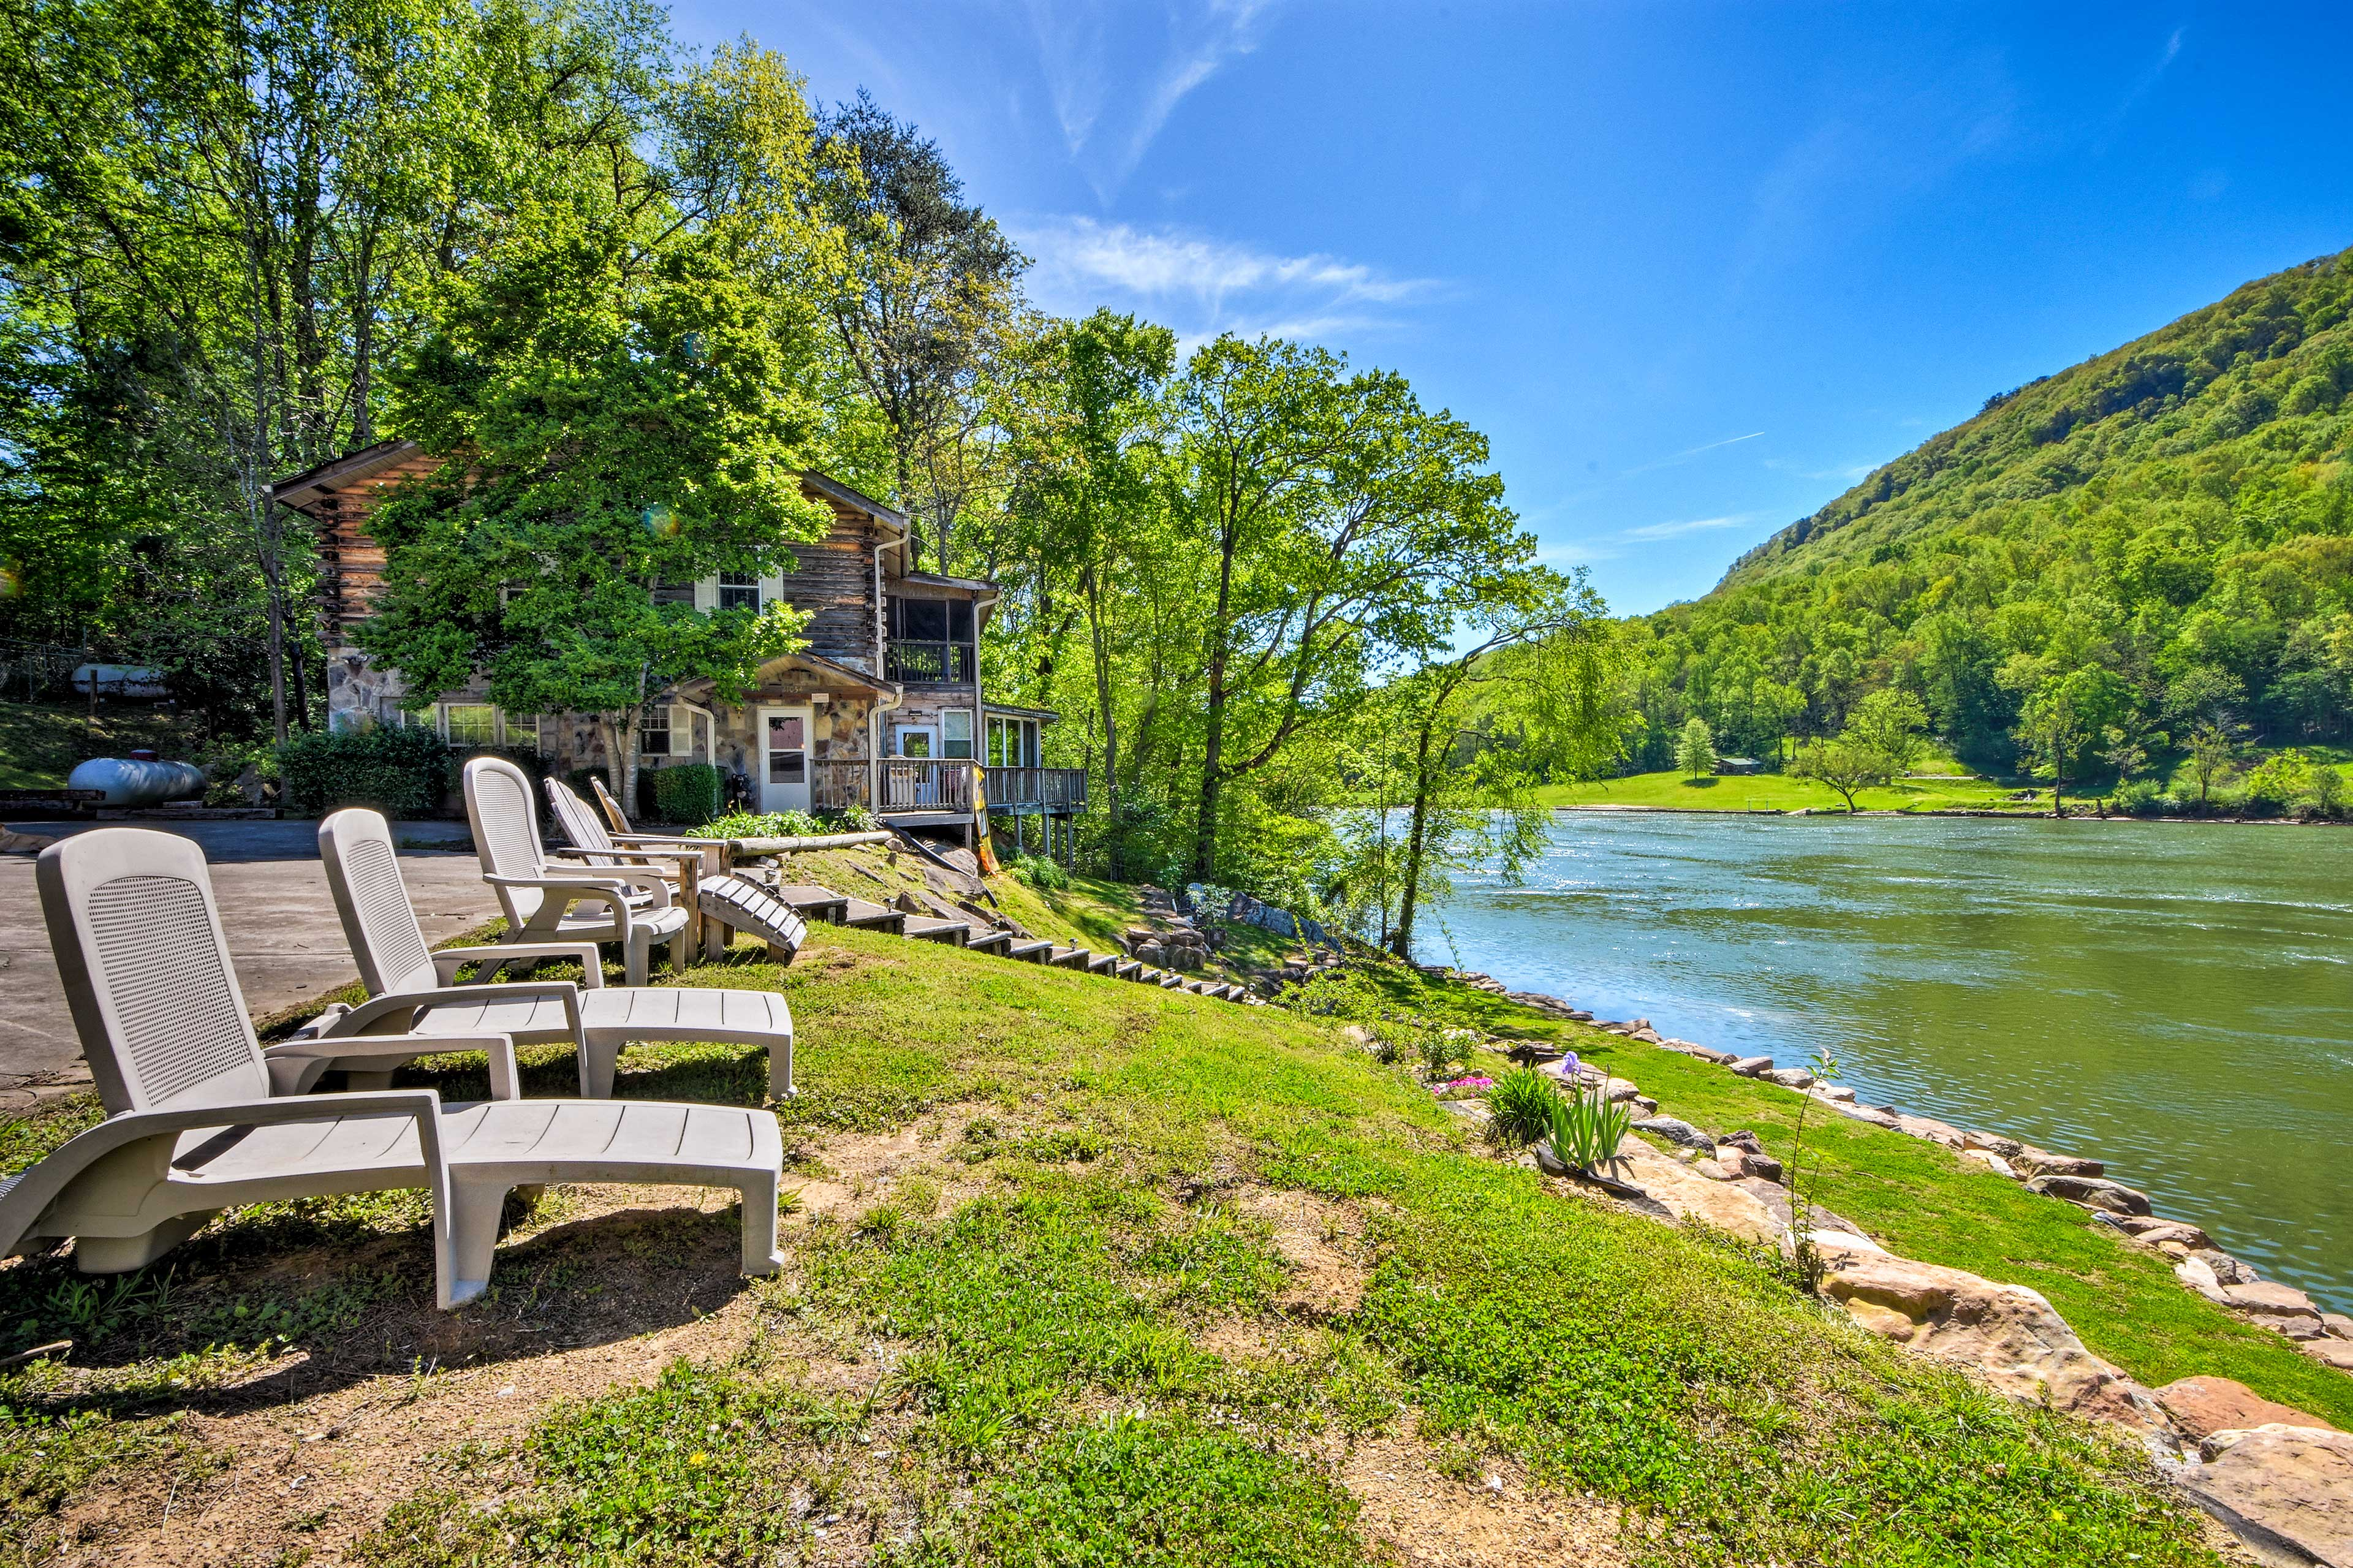 Gift yourself an unforgettable vacation at this grand Chattanooga cabin!